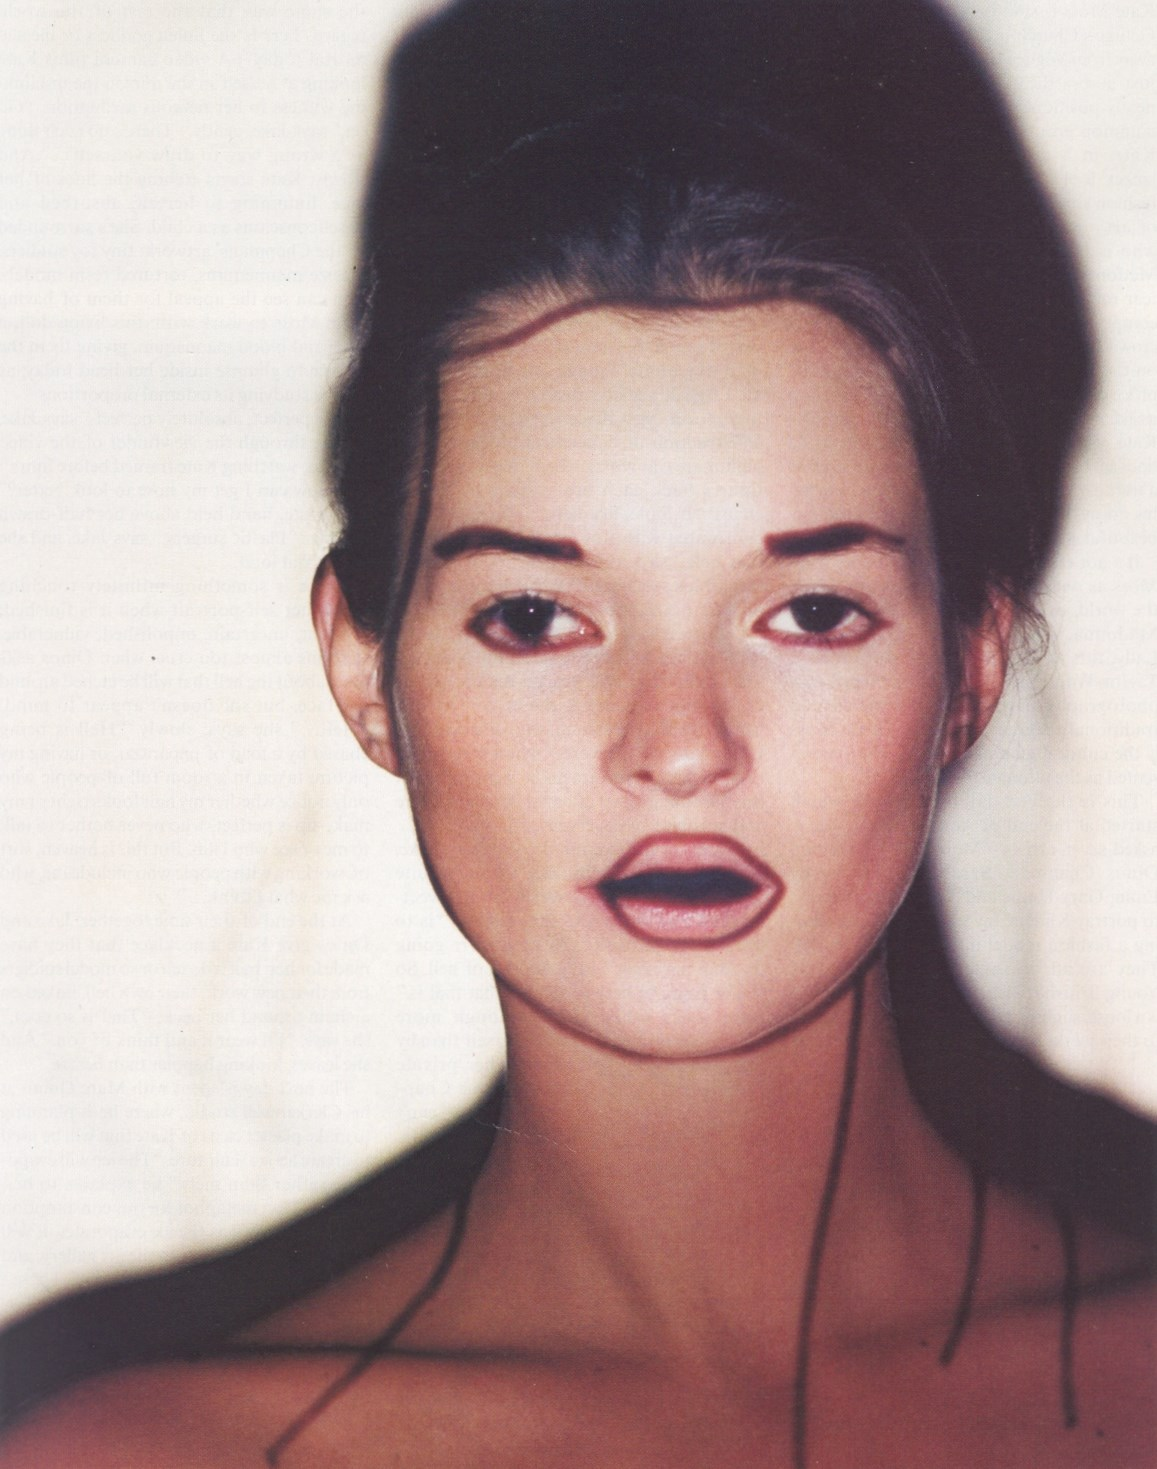 gary hume kate moss vogue uk may 2000